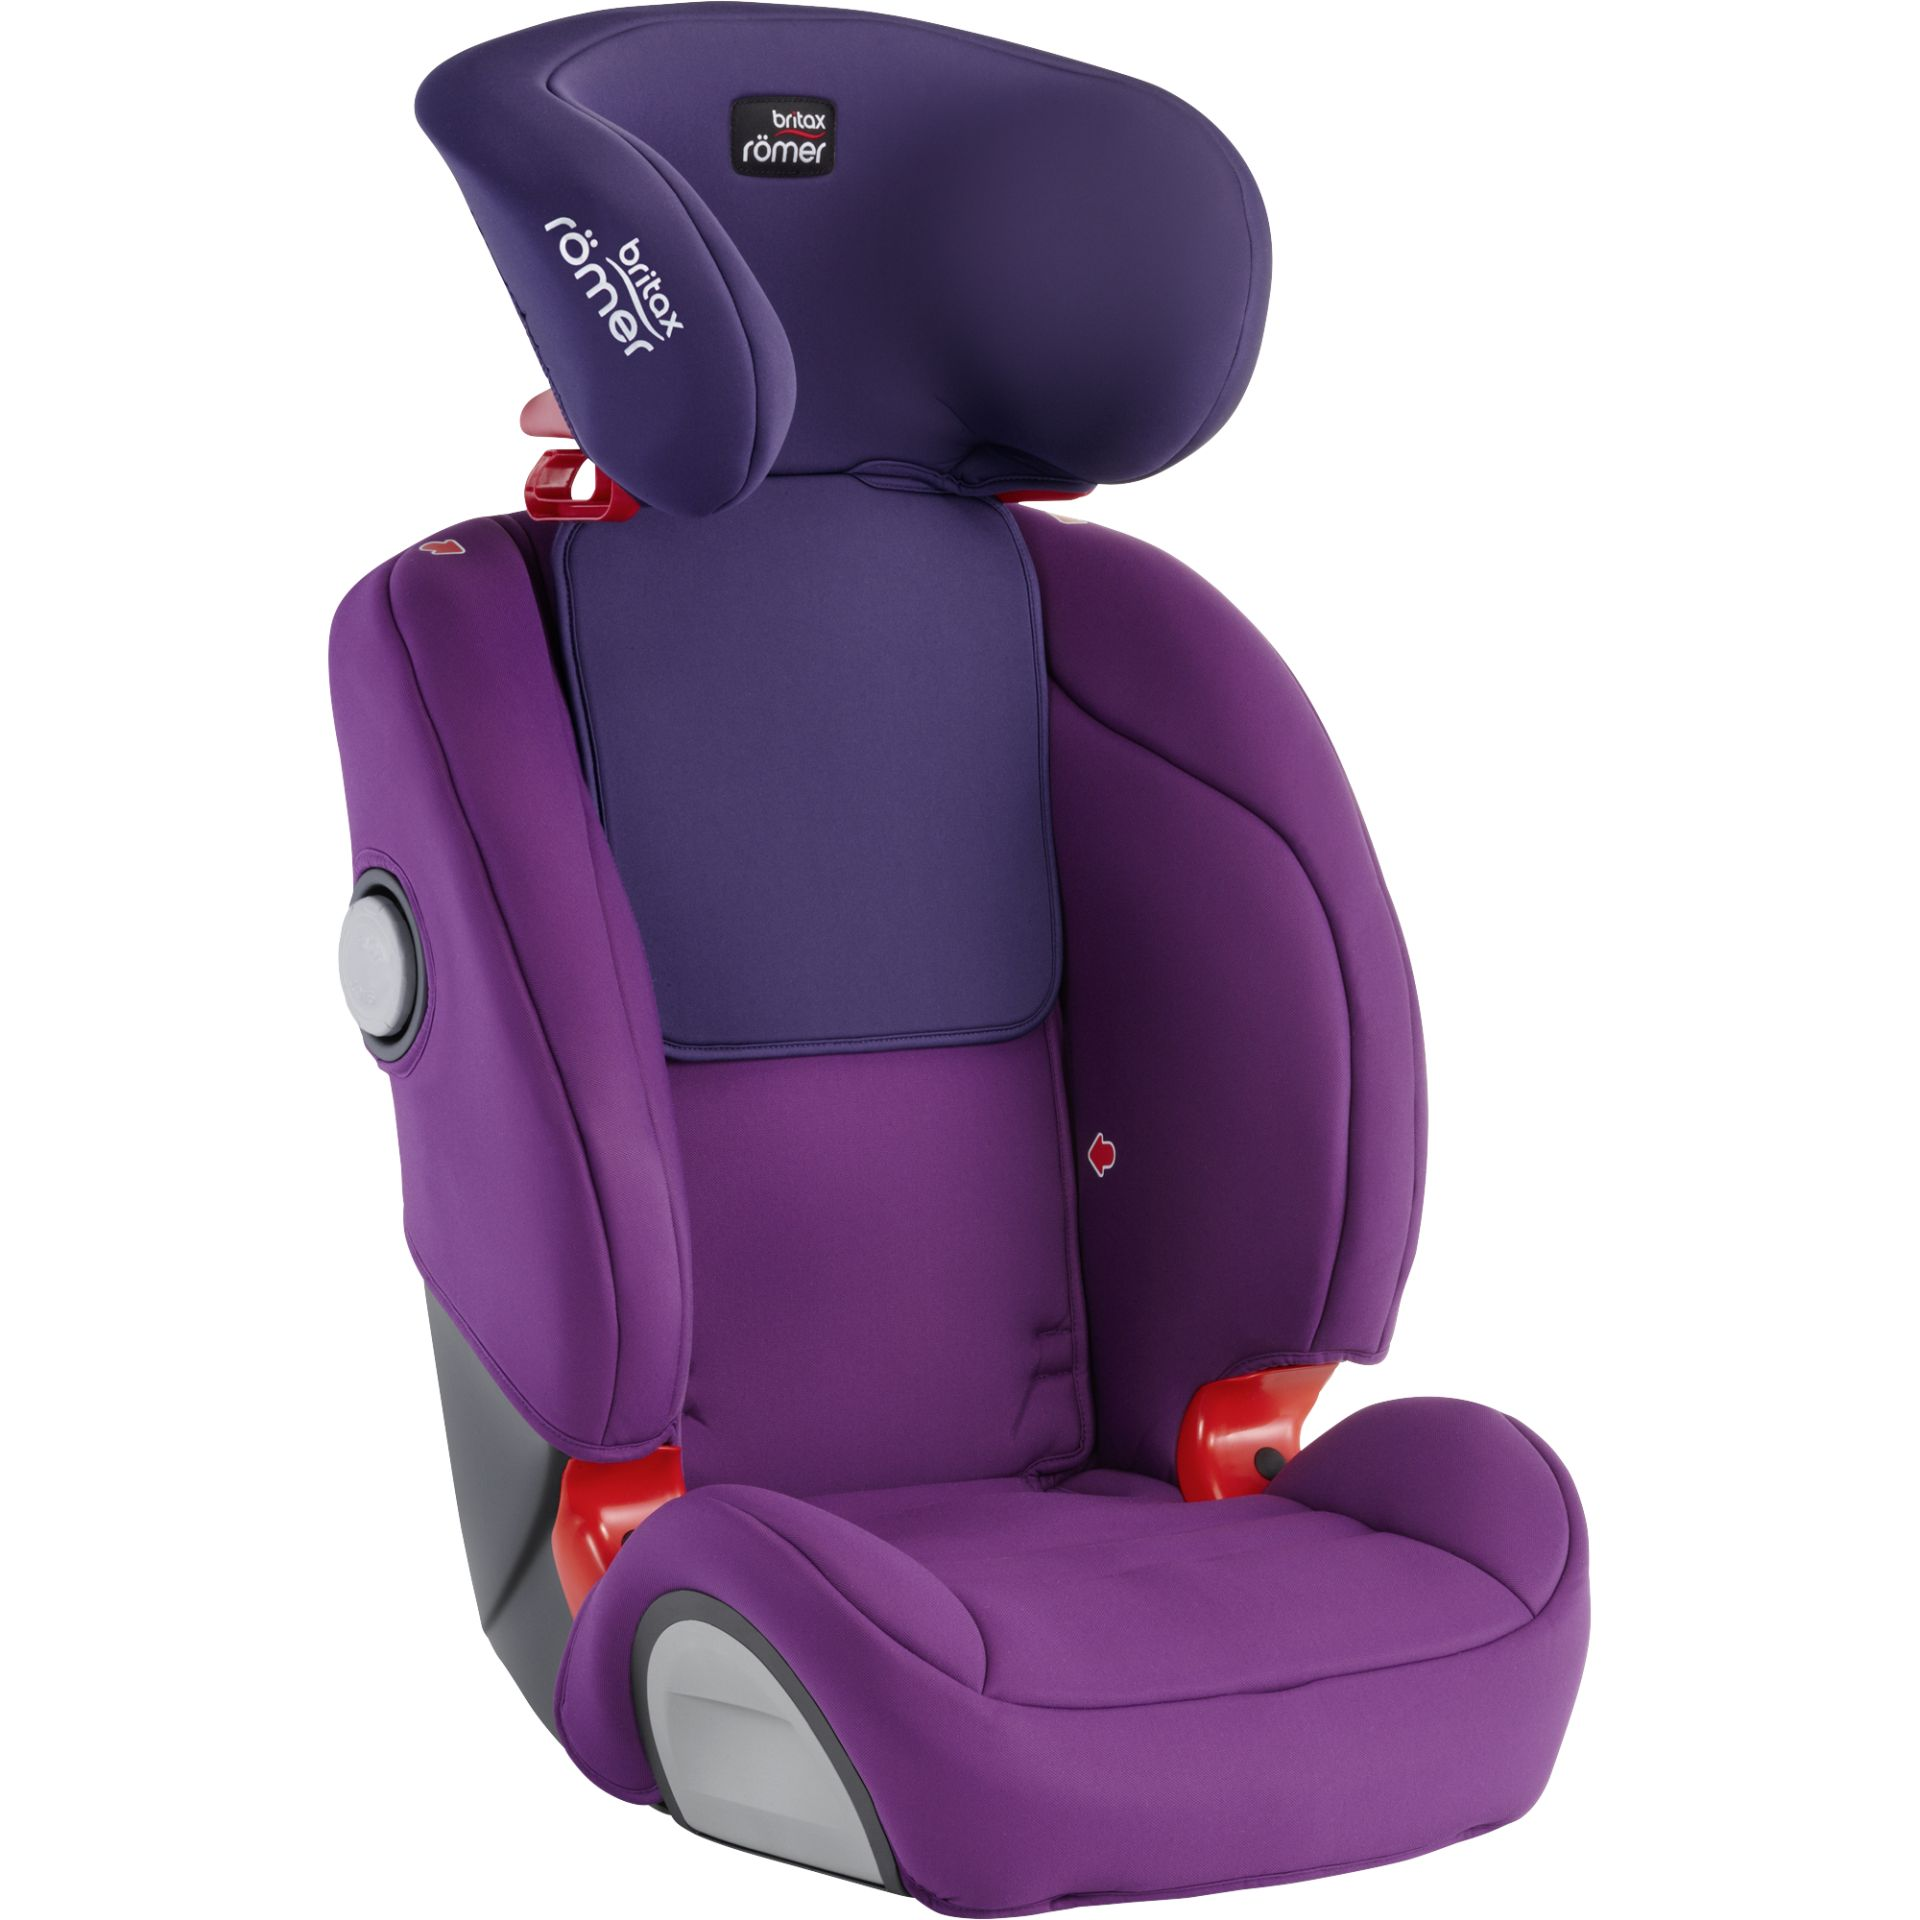 britax r mer car seat evolva 1 2 3 sl sict isofix 2017 mineral purple buy at kidsroom car seats. Black Bedroom Furniture Sets. Home Design Ideas